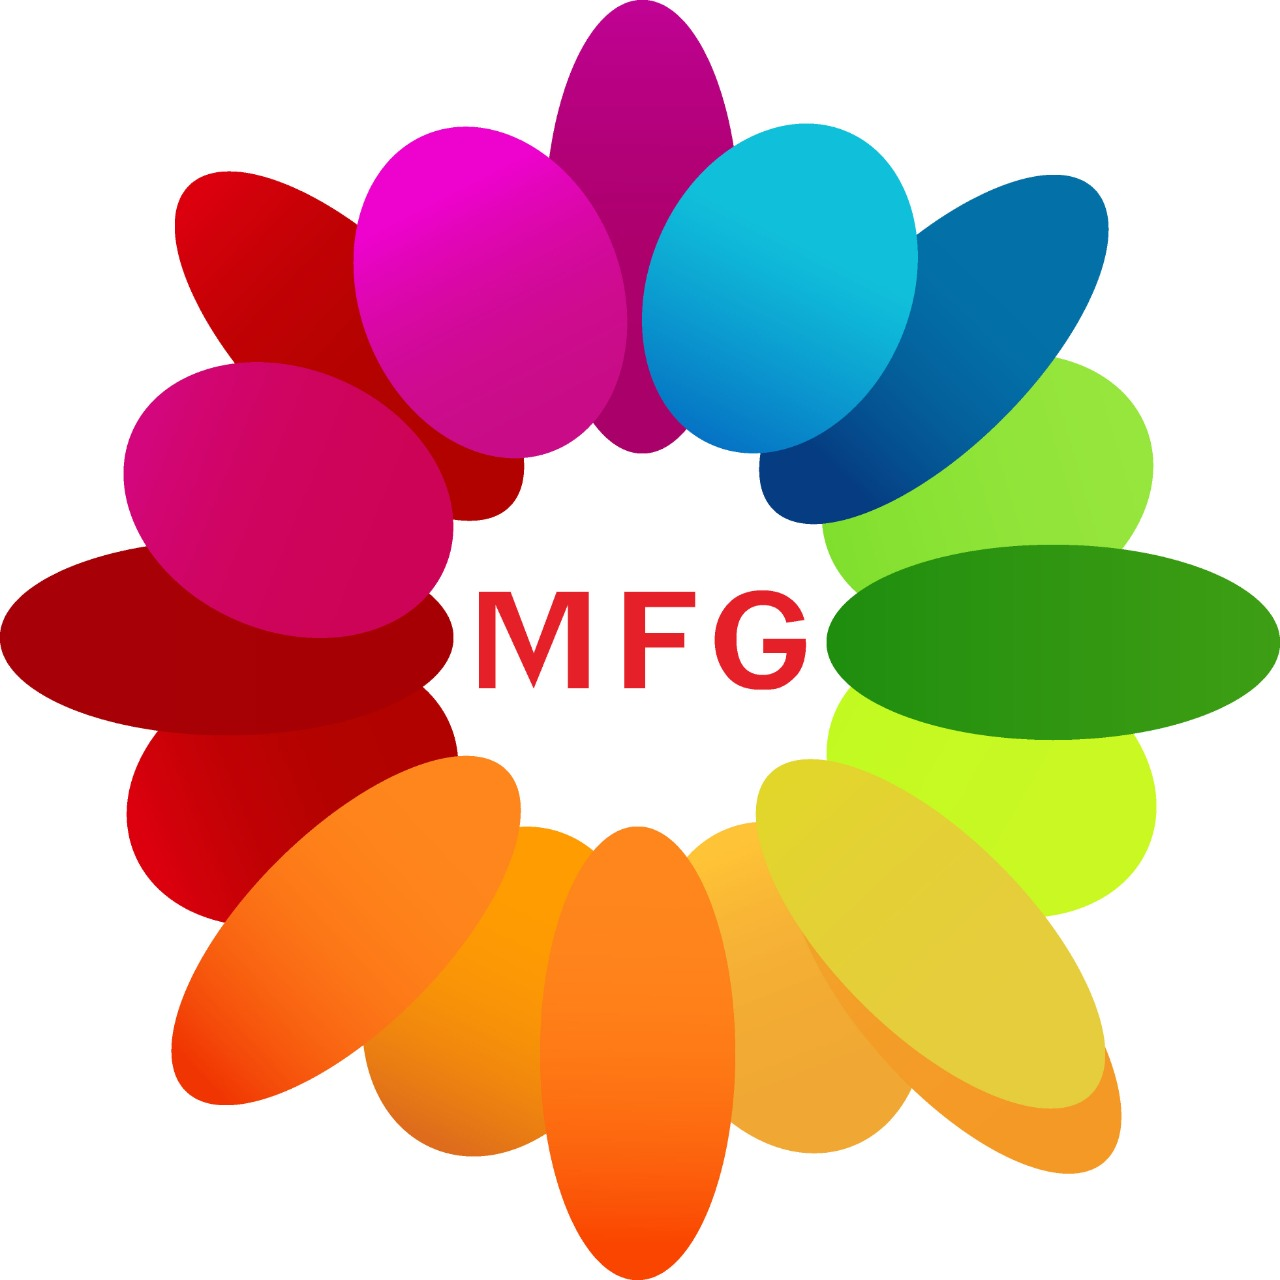 12 Red Roses Bunchwith 6inch Teddy, 16pcs Ferrero Rocher,Box of celebration ,1 Pound chocolate truffle fresh Cream Cake